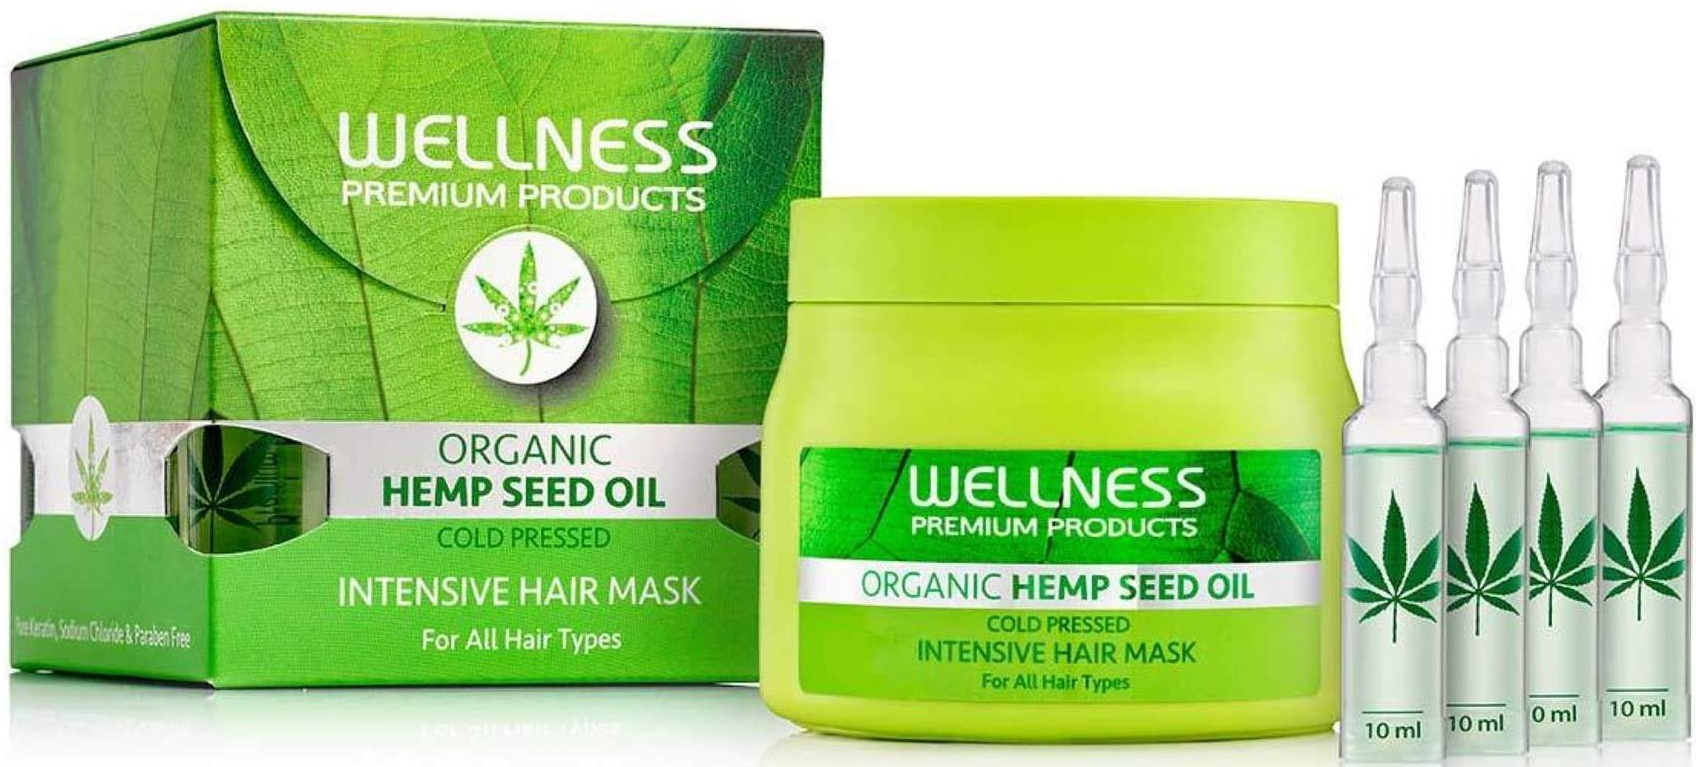 WELLNESS PREMIUM PRODUCTS Organic Hemp Seed Oil Intensive Mask & Ampoule Treatment (Set Of 4)